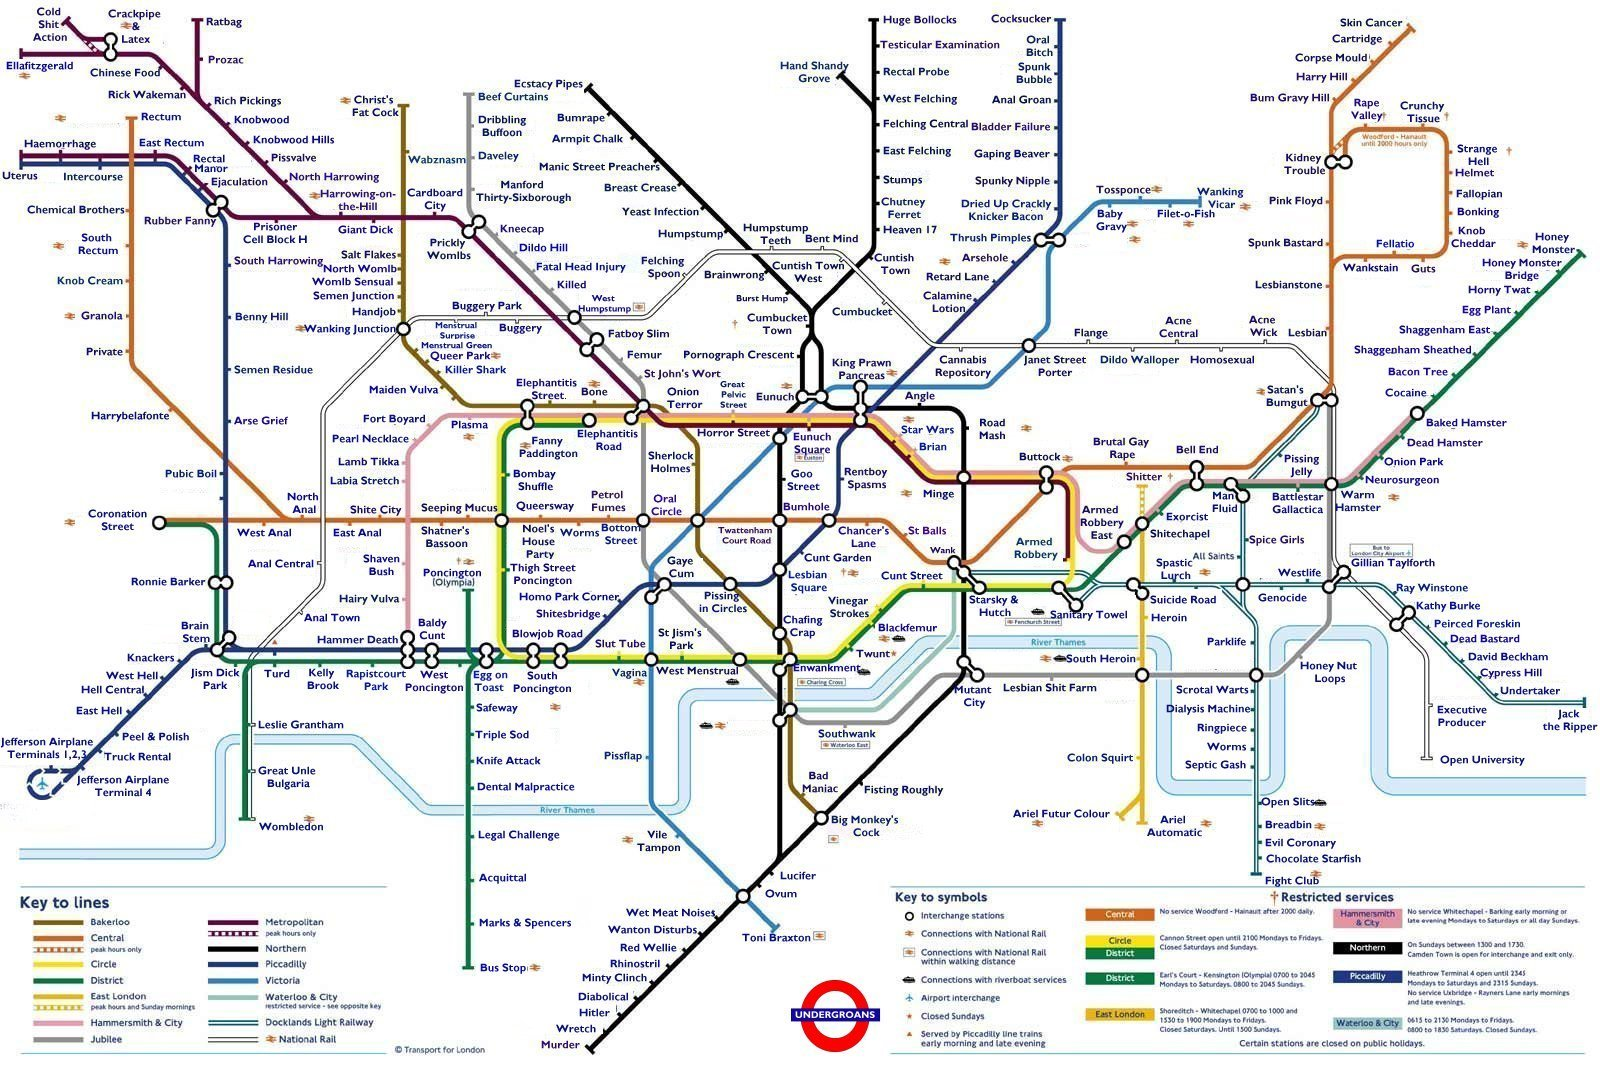 Try Not To Be Offended By This Extremely Rude Tube Map Secret London - Check off map